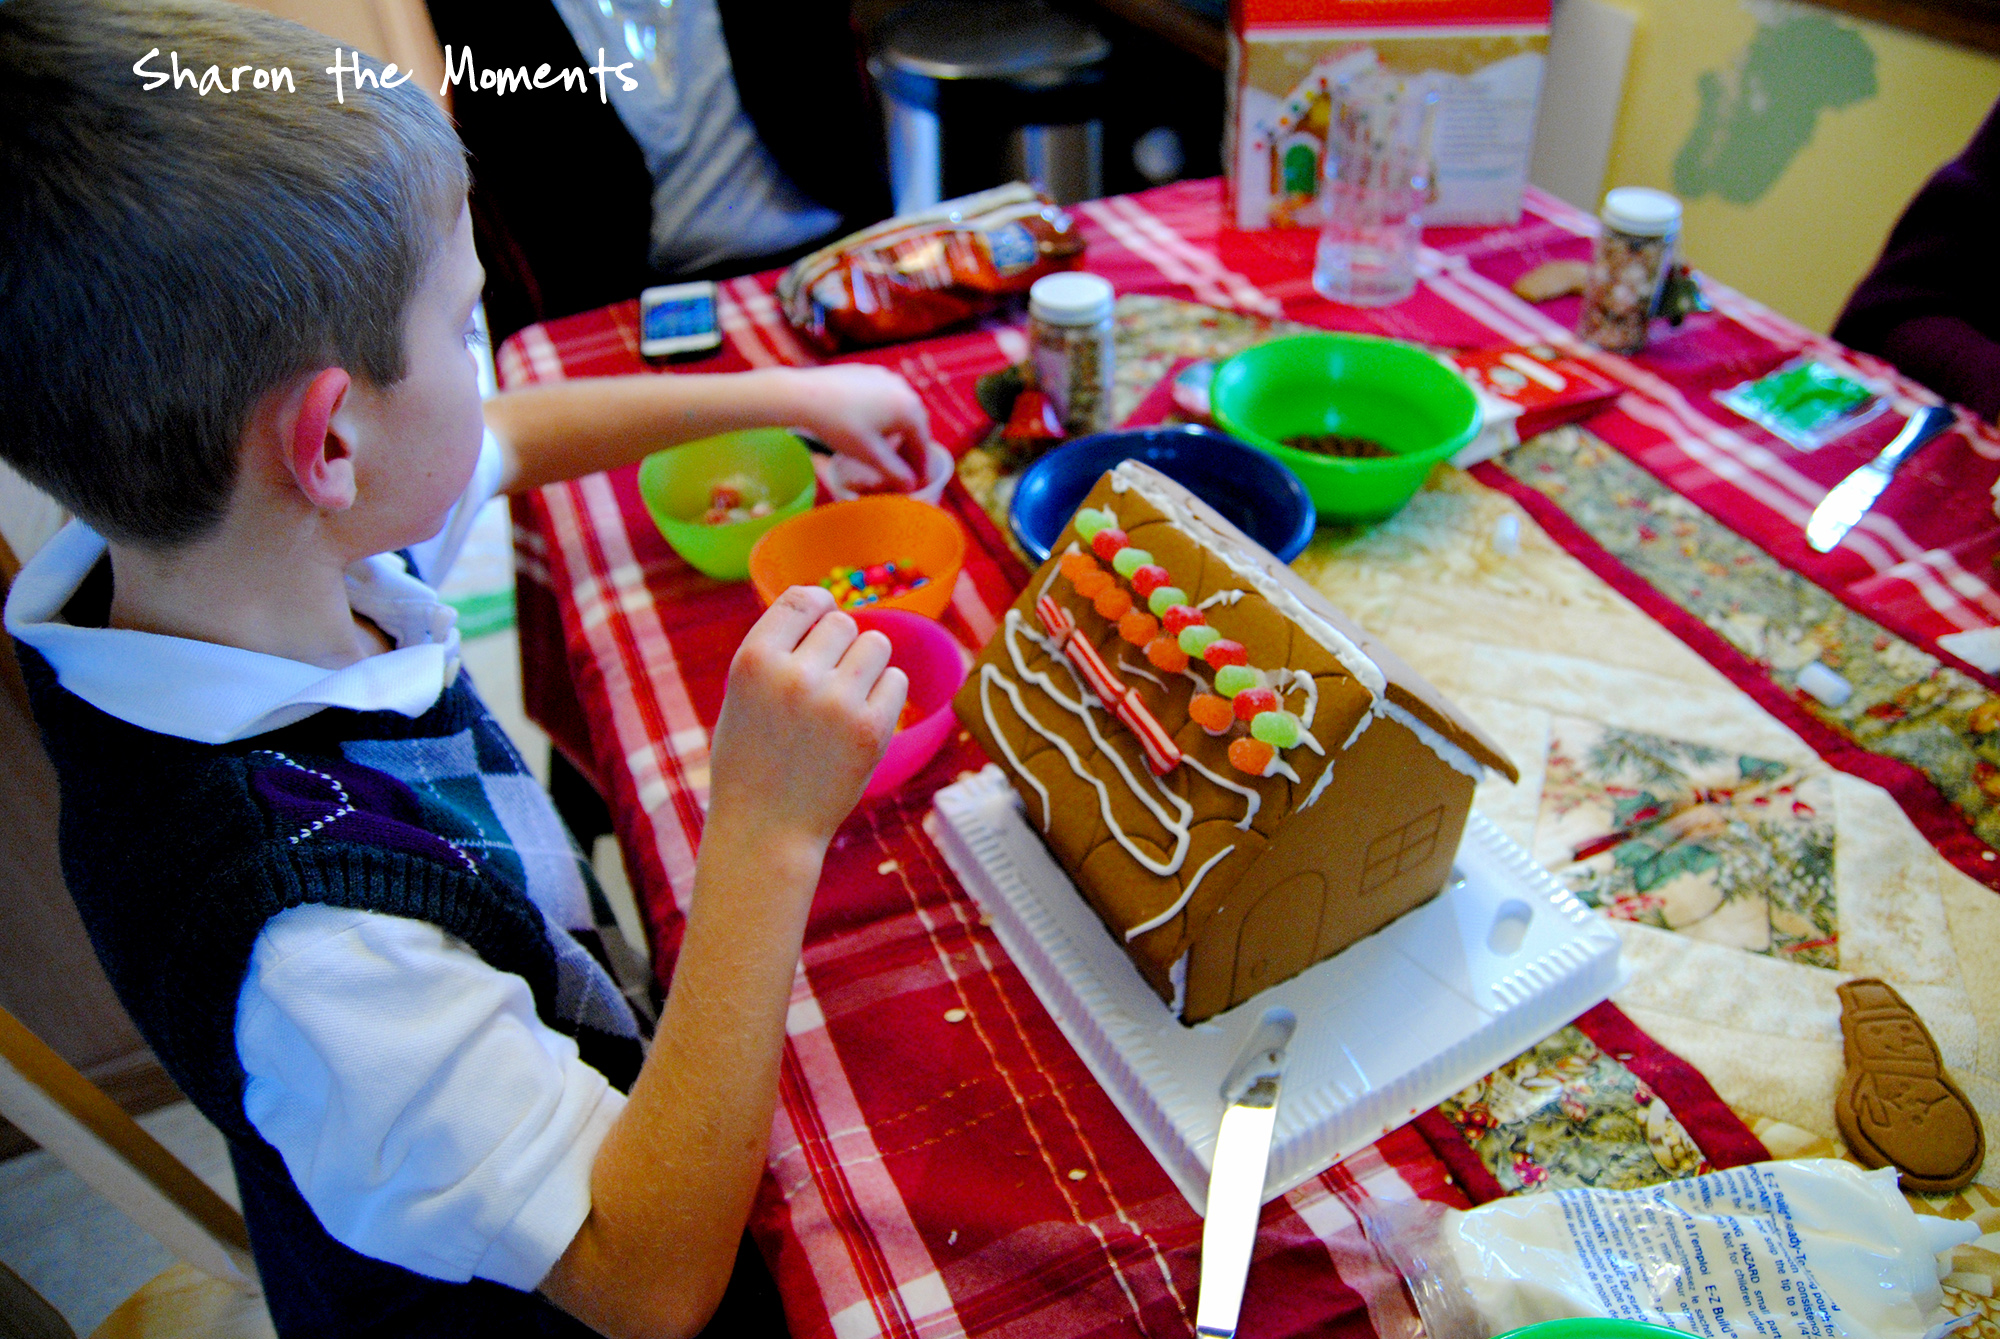 Elf on the Shelf North Pole Party|Sharon the Moments blog